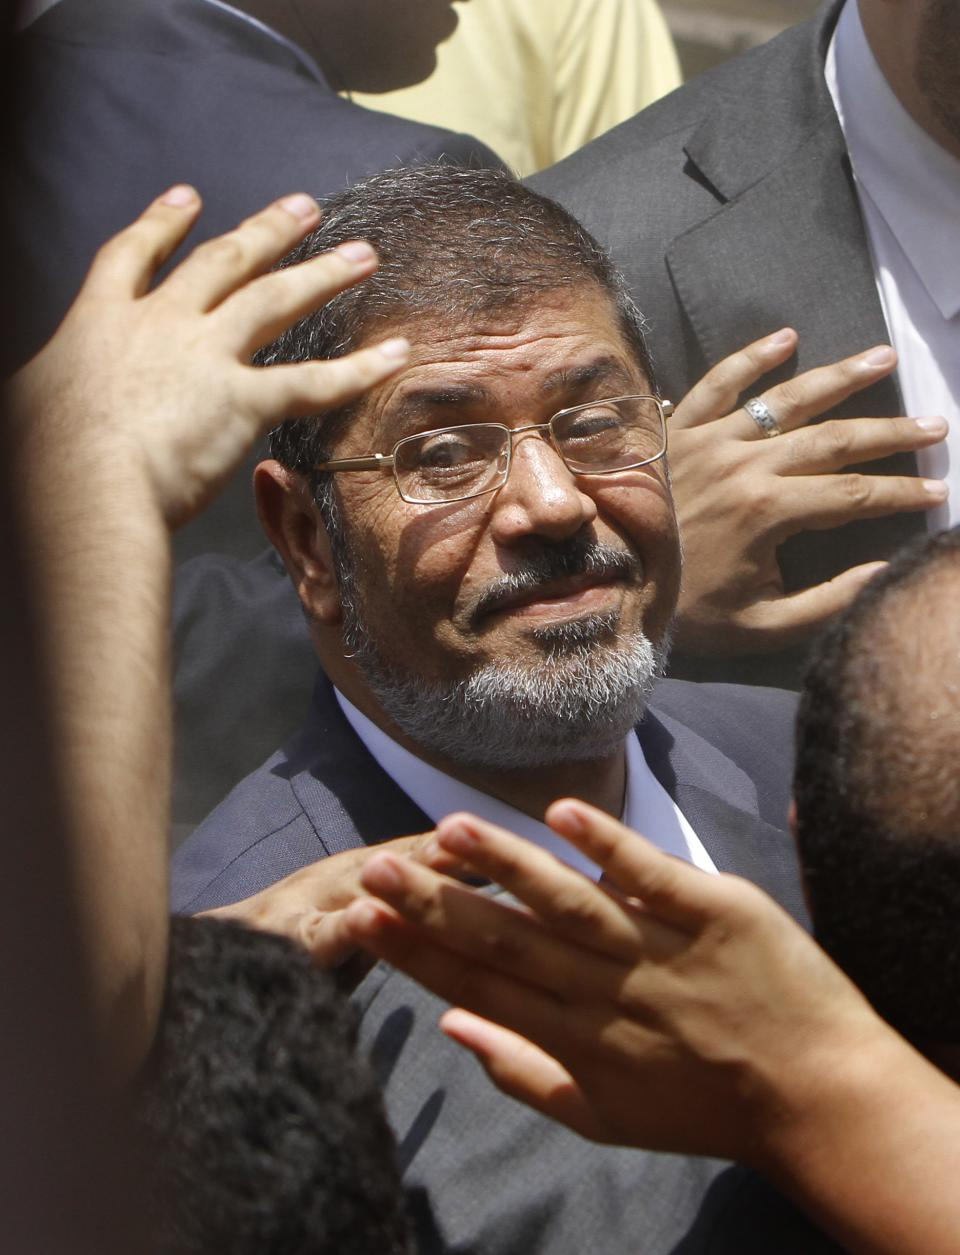 FILE - In this Saturday, June 16, 2012 file photo, supporters wave to Egyptian presidential candidate Mohammed Morsi after he cast his vote at a polling station in Zagazig, 63 miles (100 kilometers) northeast of Cairo, Egypt. (AP Photo/Amr Nabil, File)